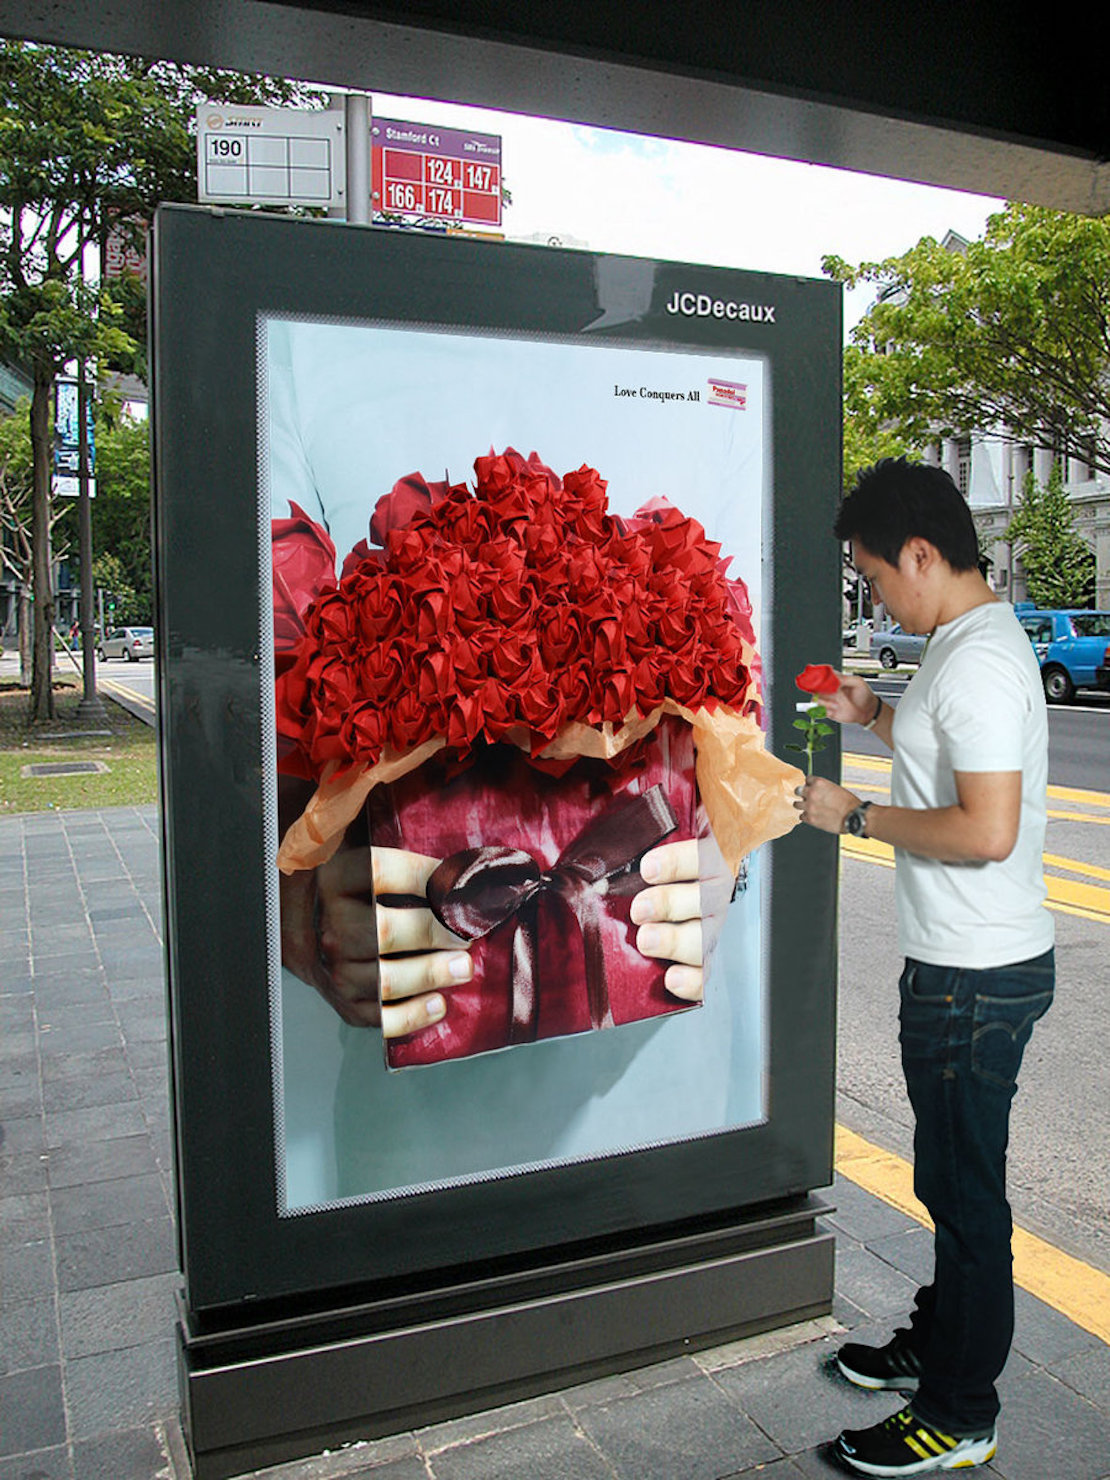 48 Fresh And Creative Bus Stop Advertisements That Will Blow Your Mind 7